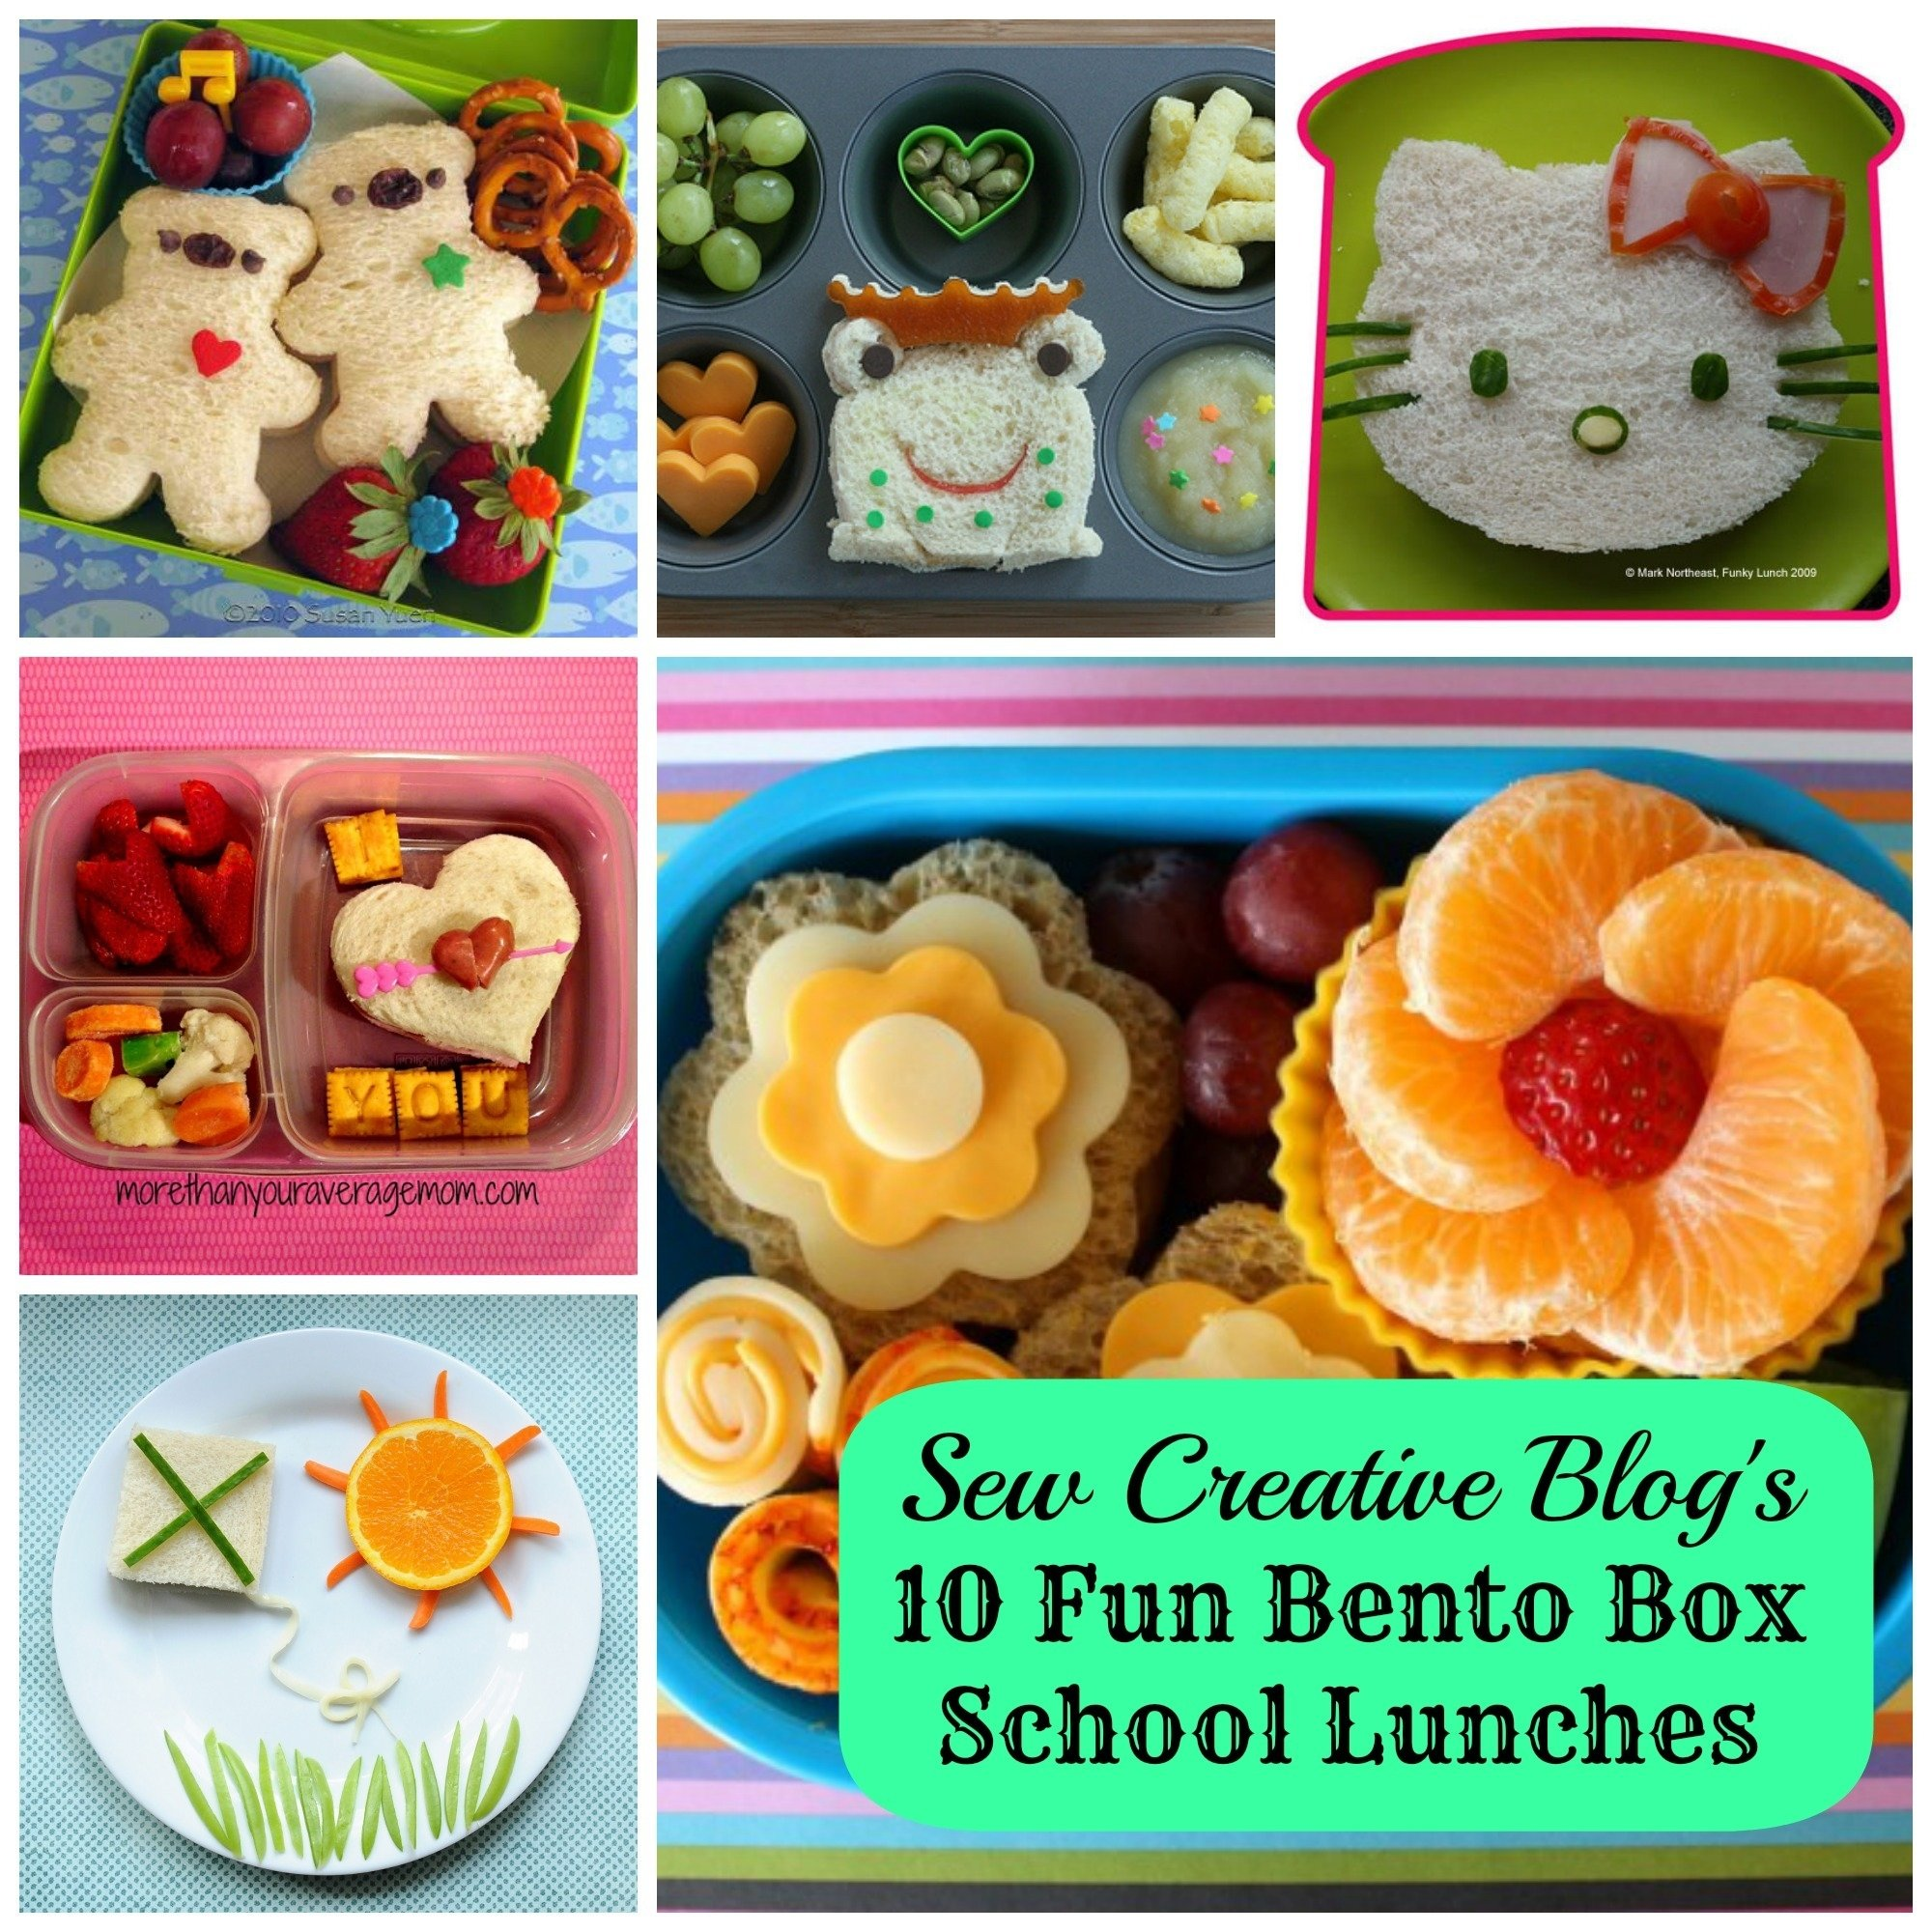 10 Trendy Good Ideas For School Lunches weekly inspiration 10 fun bento box school lunches sew creative 2021